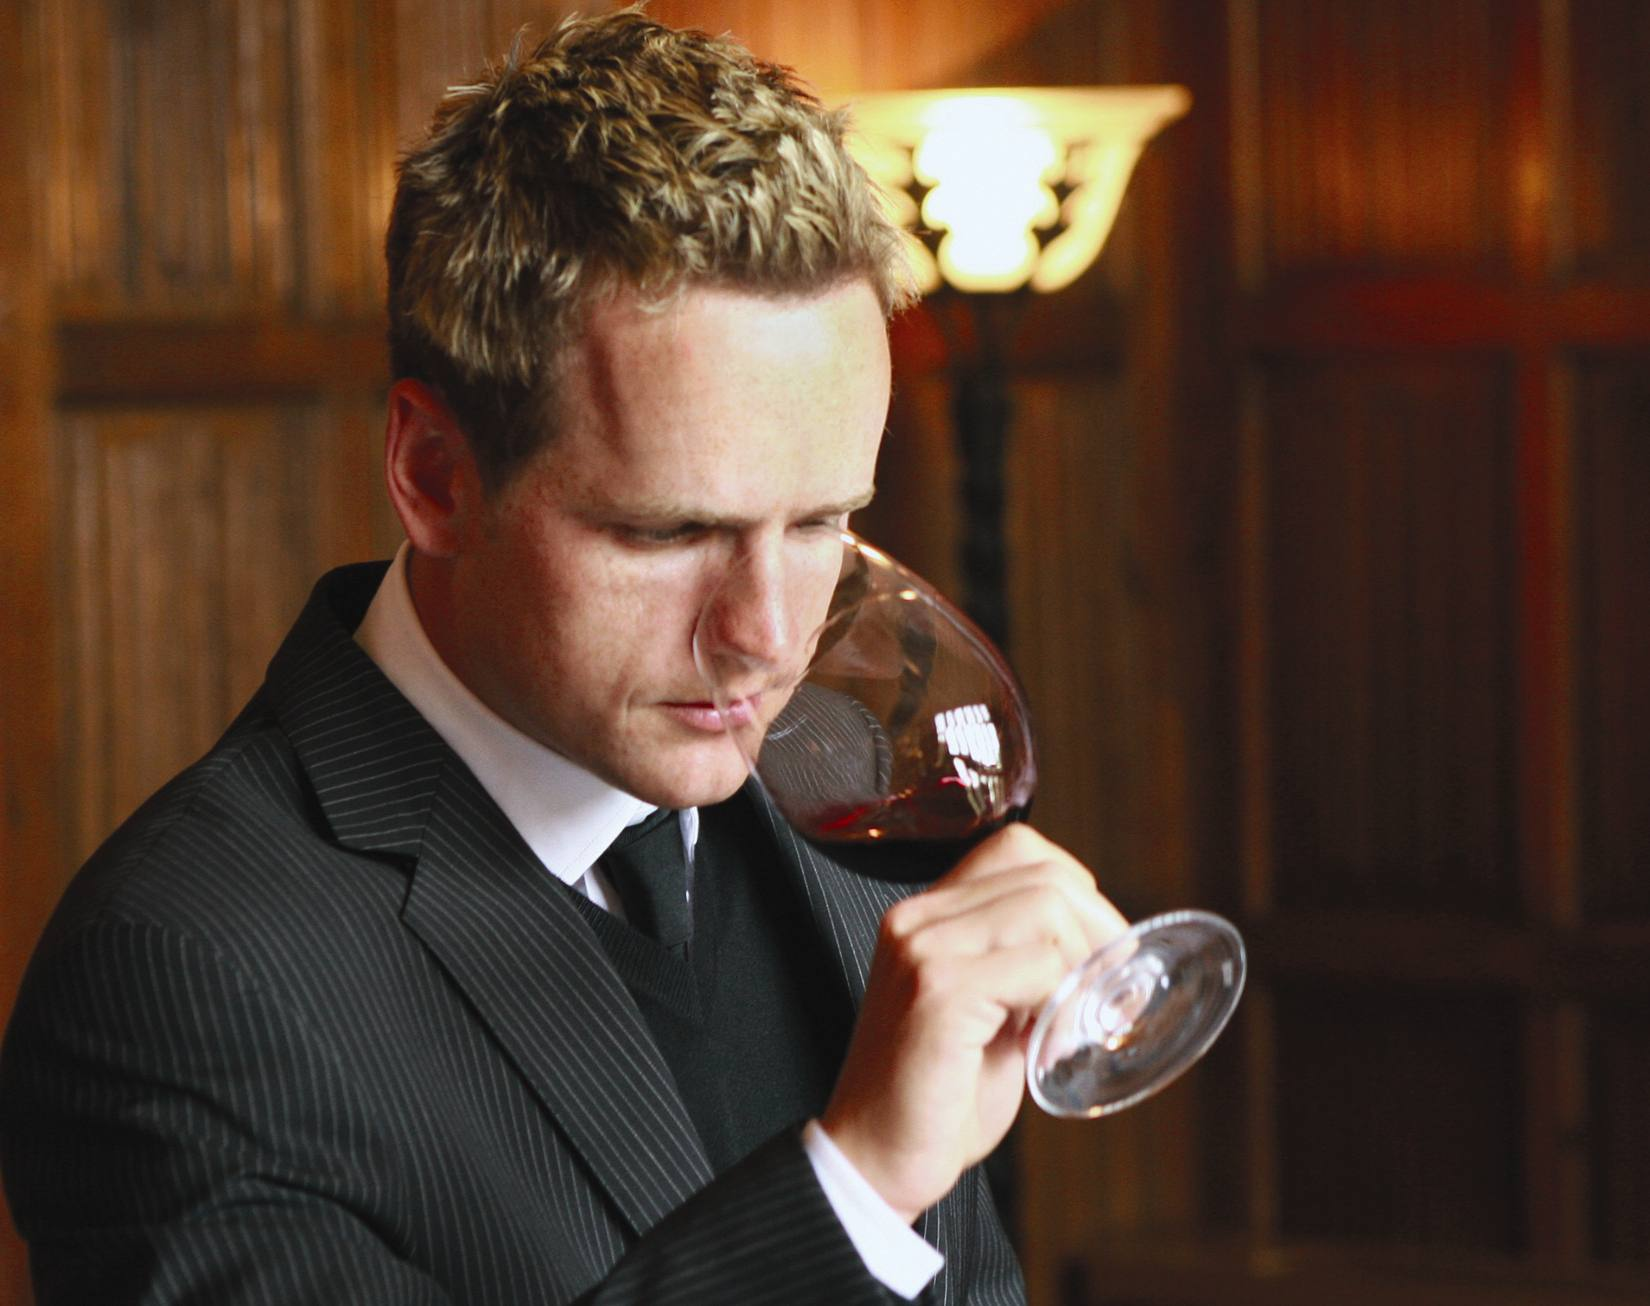 Luke Donald checks the bouquet of one of his wines